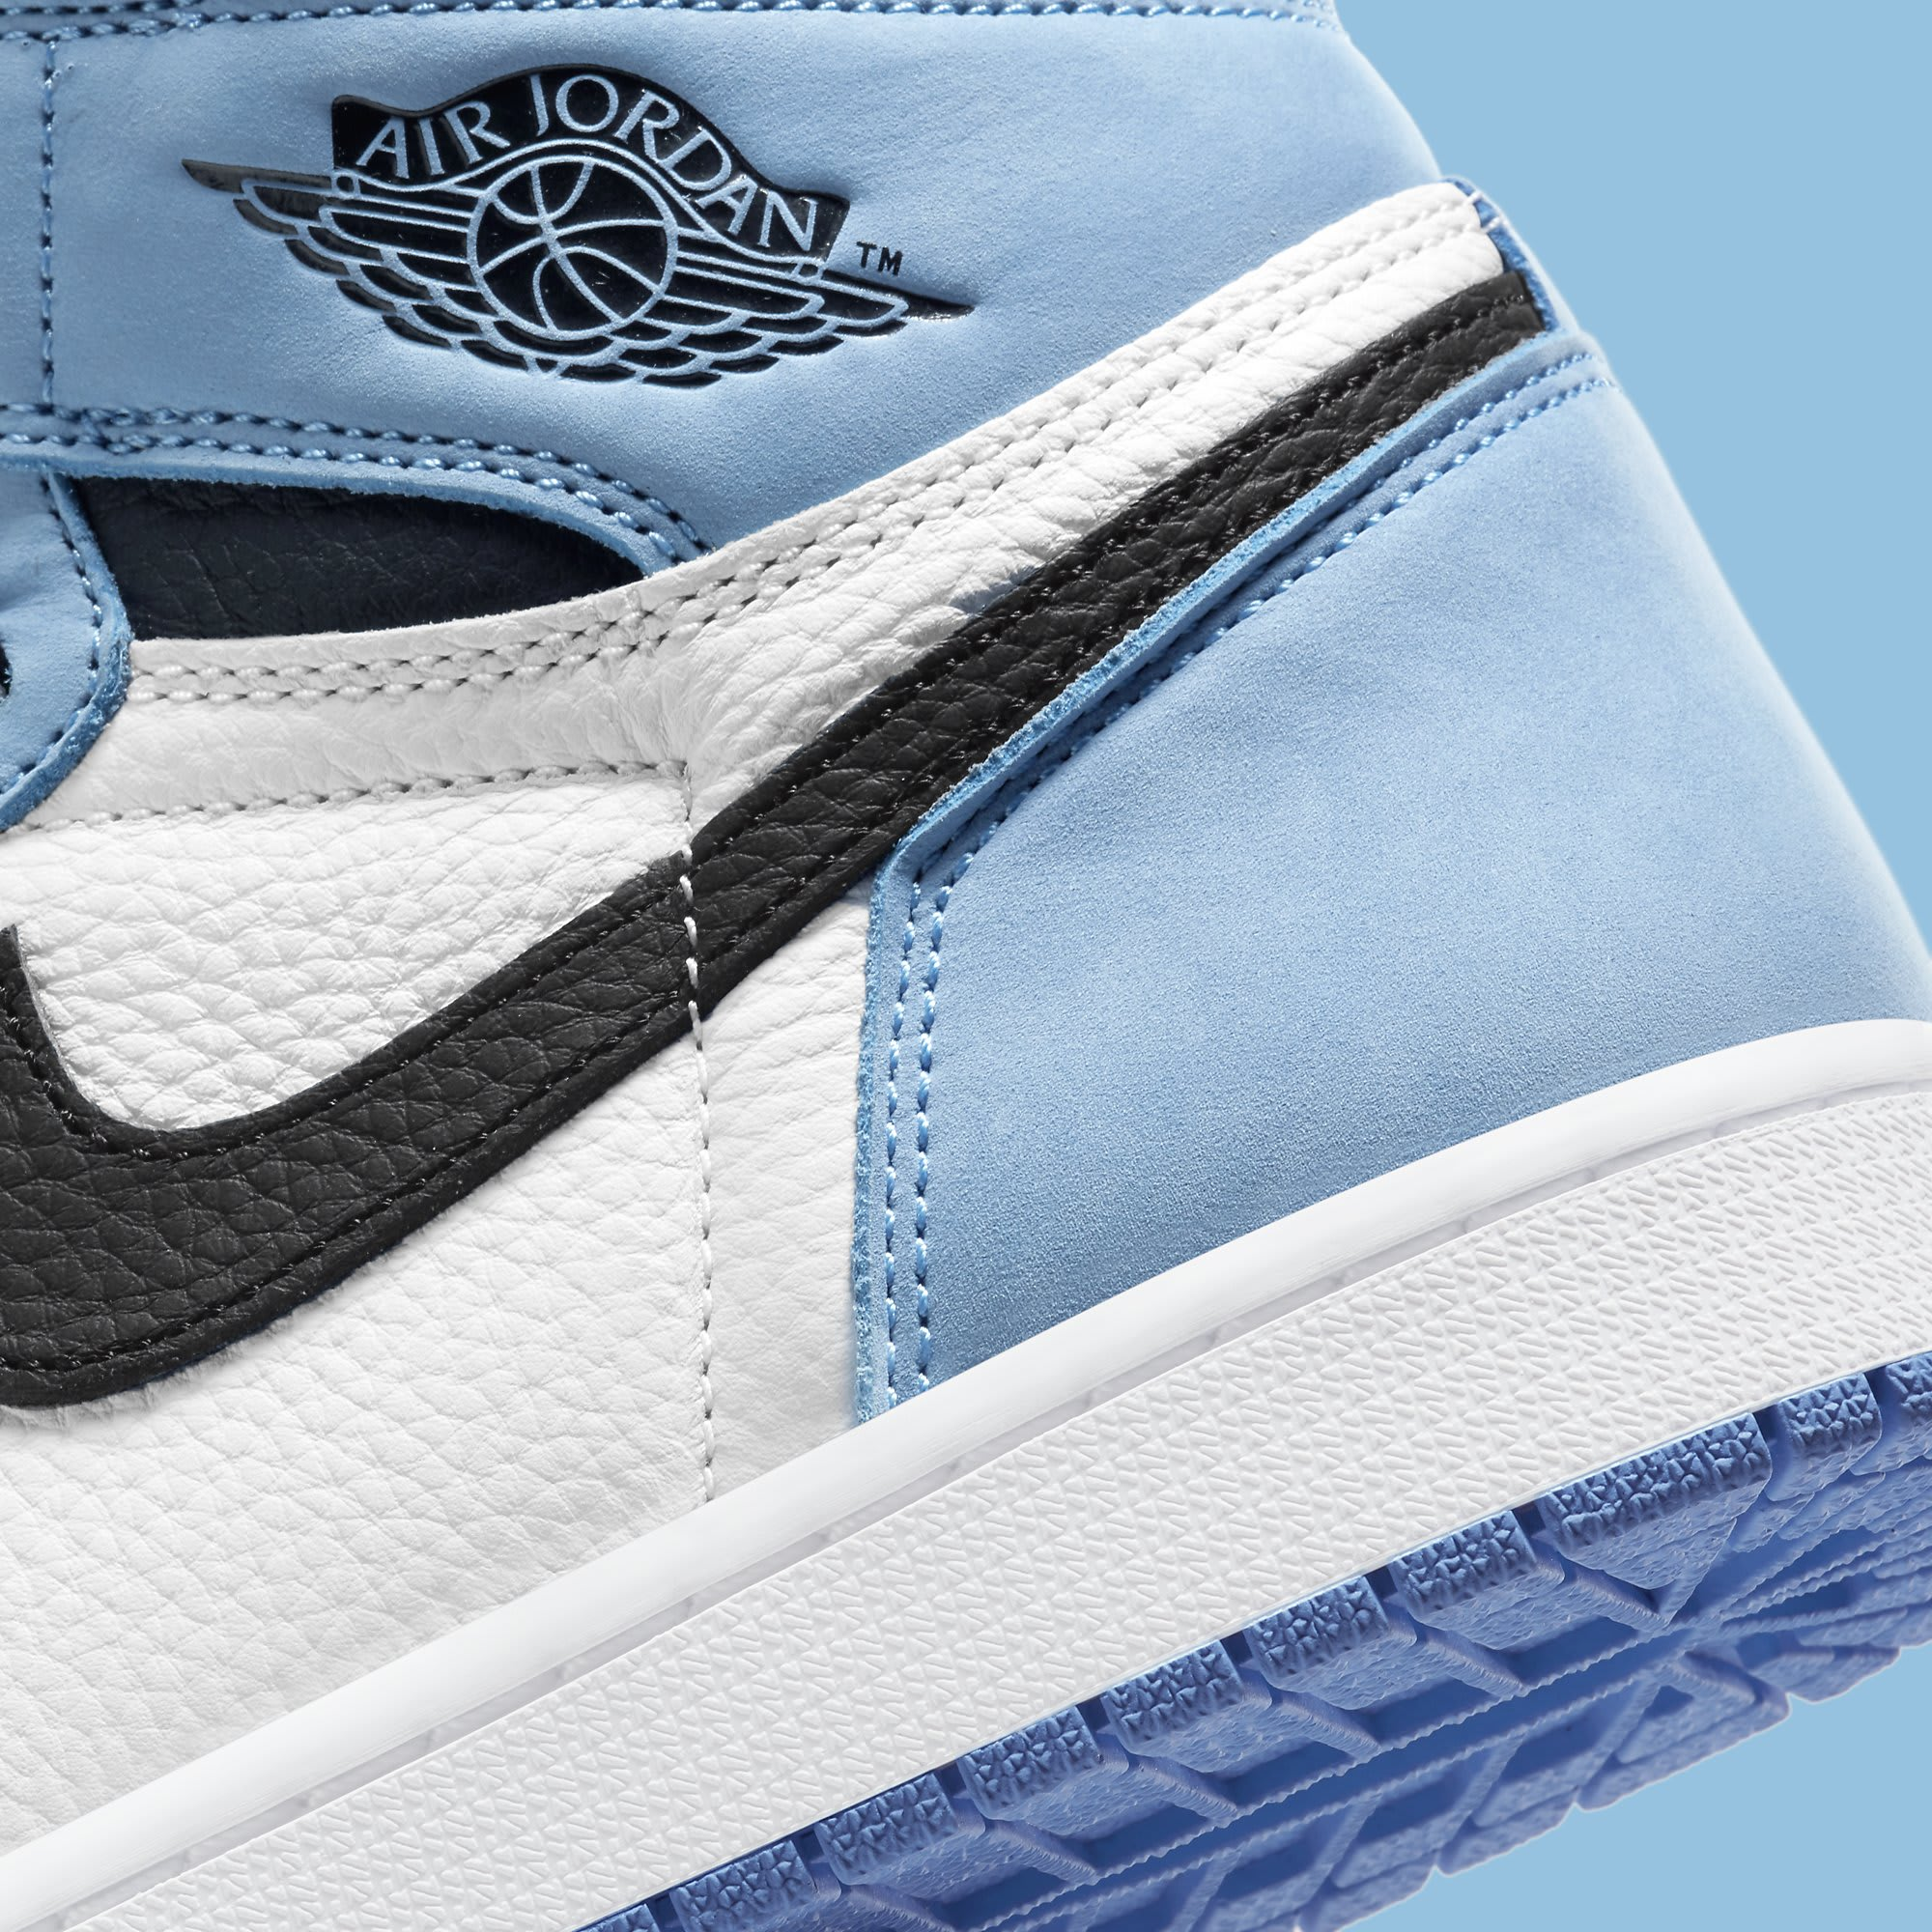 Air Jordan 1 University Blue Release Date 555088-134 Heel Detail